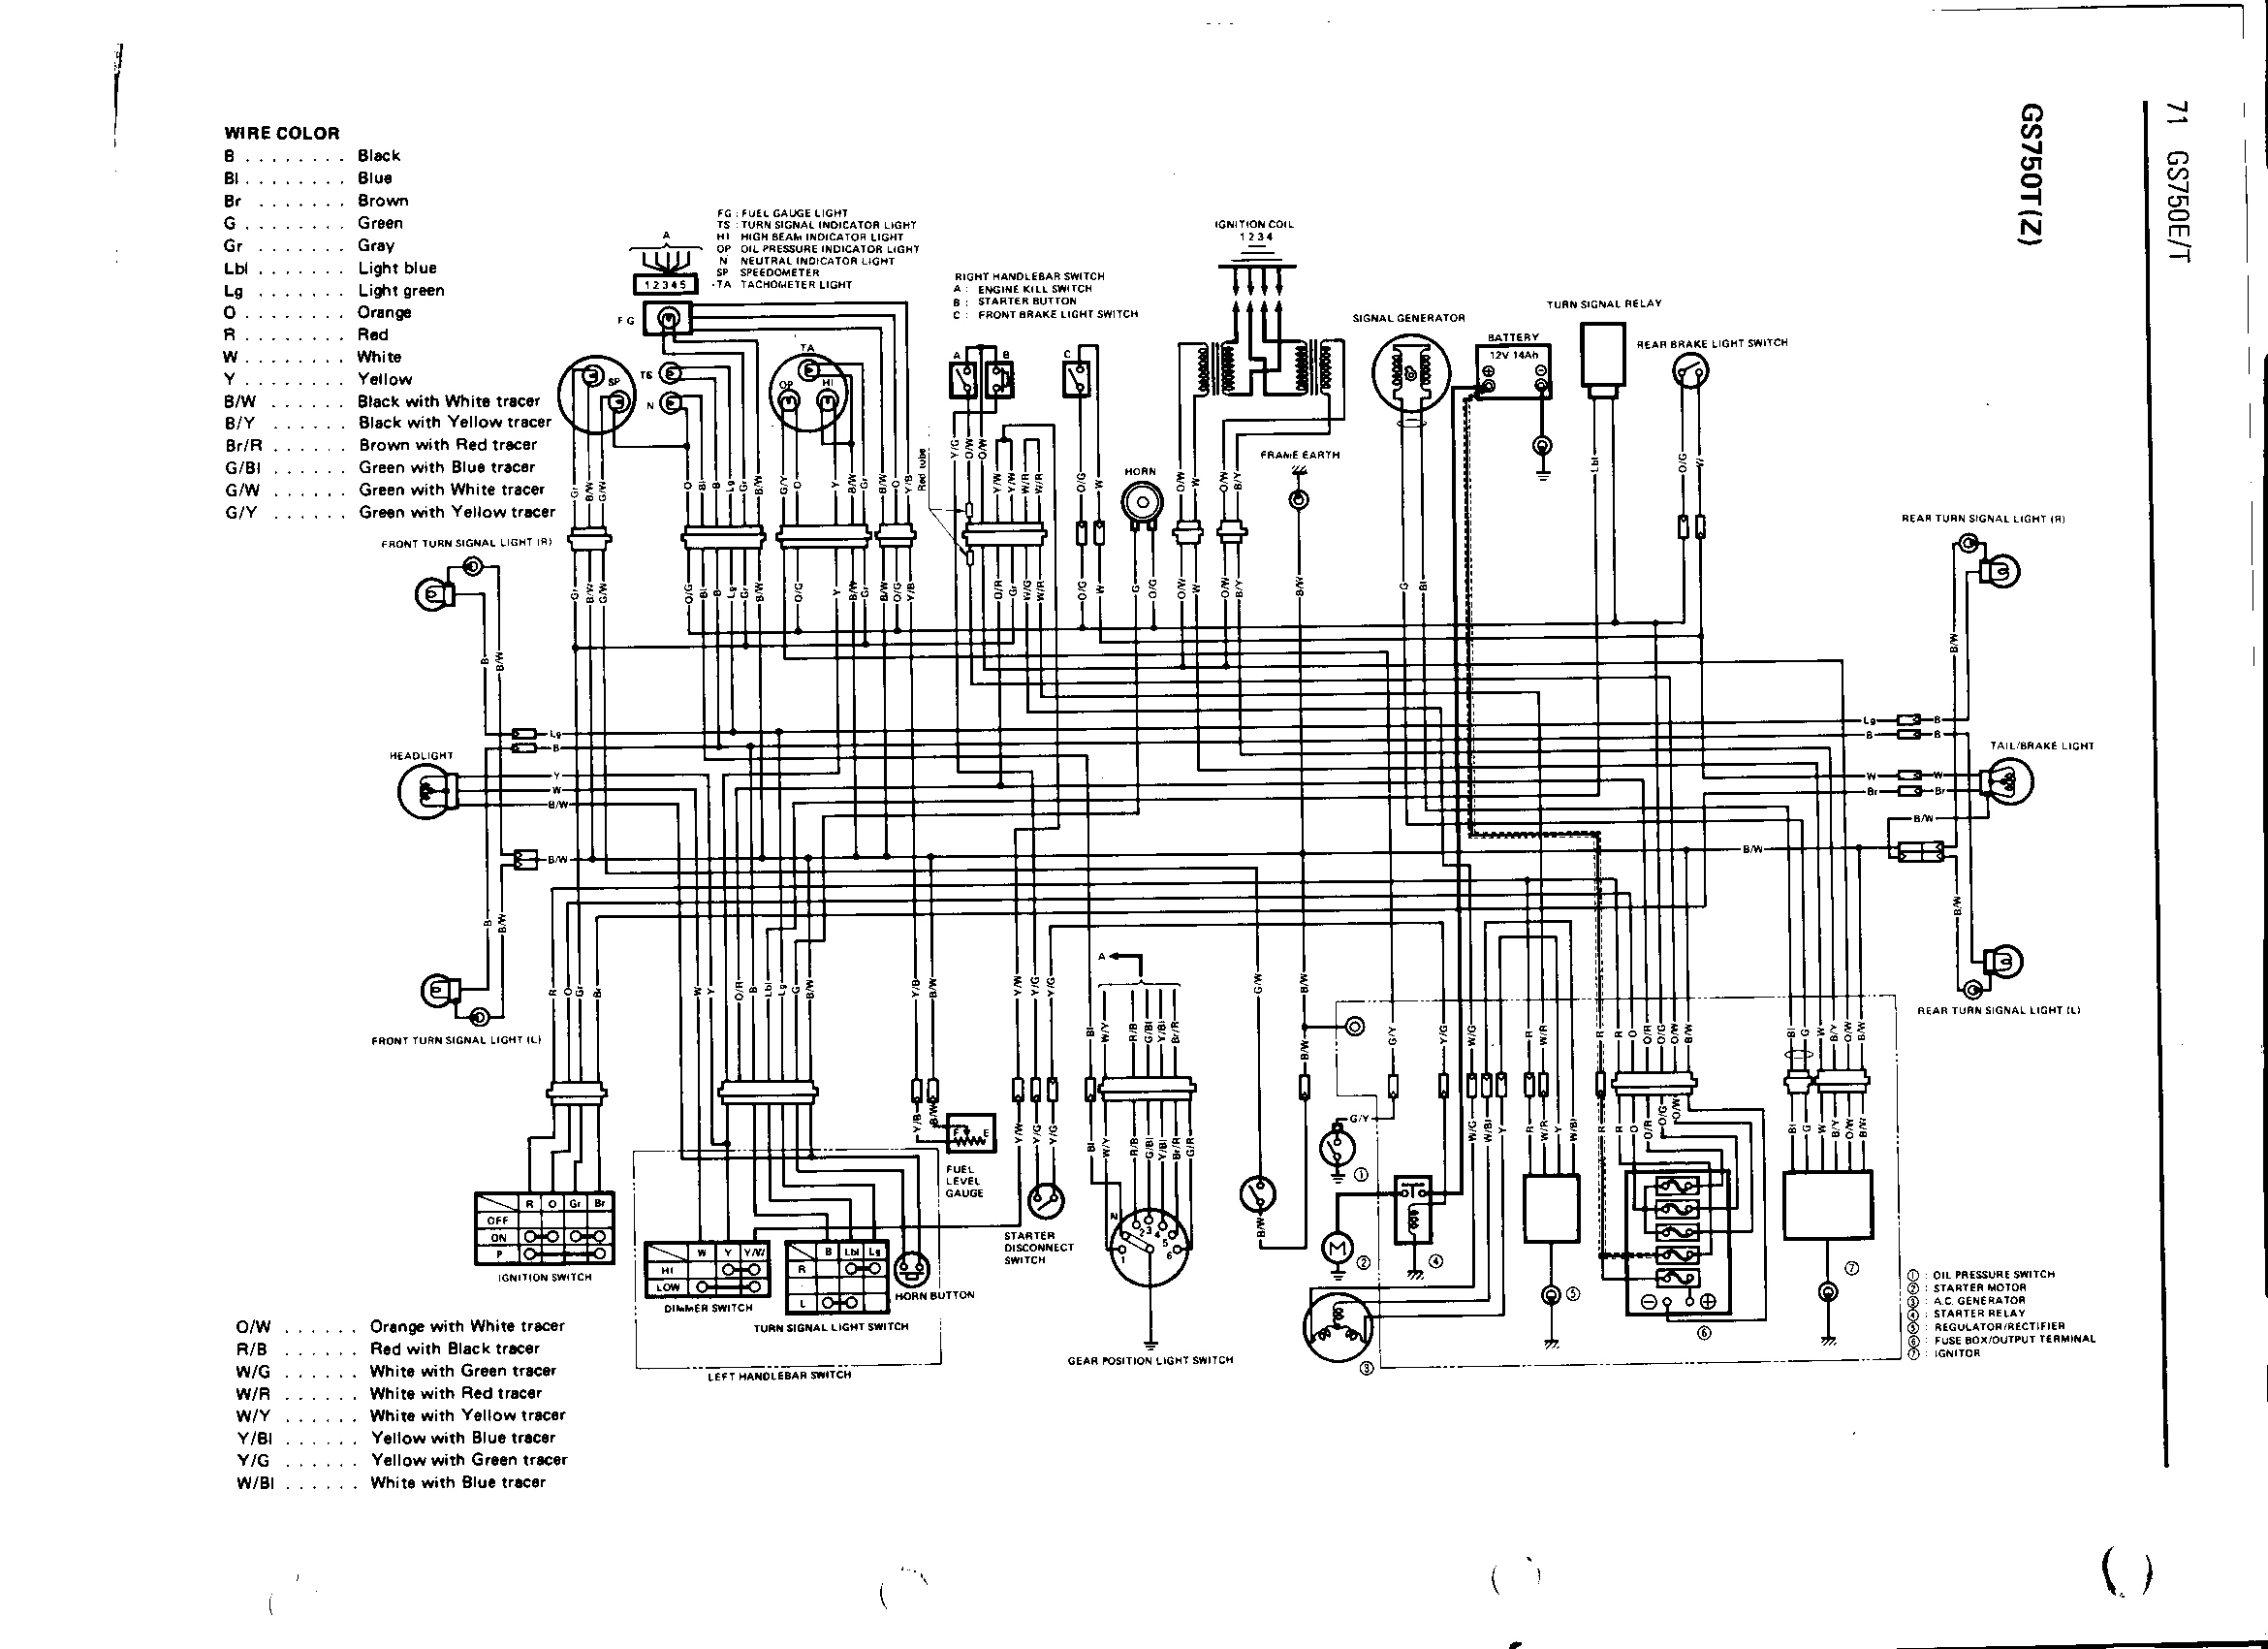 1978 Gs550 Wiring Diagram